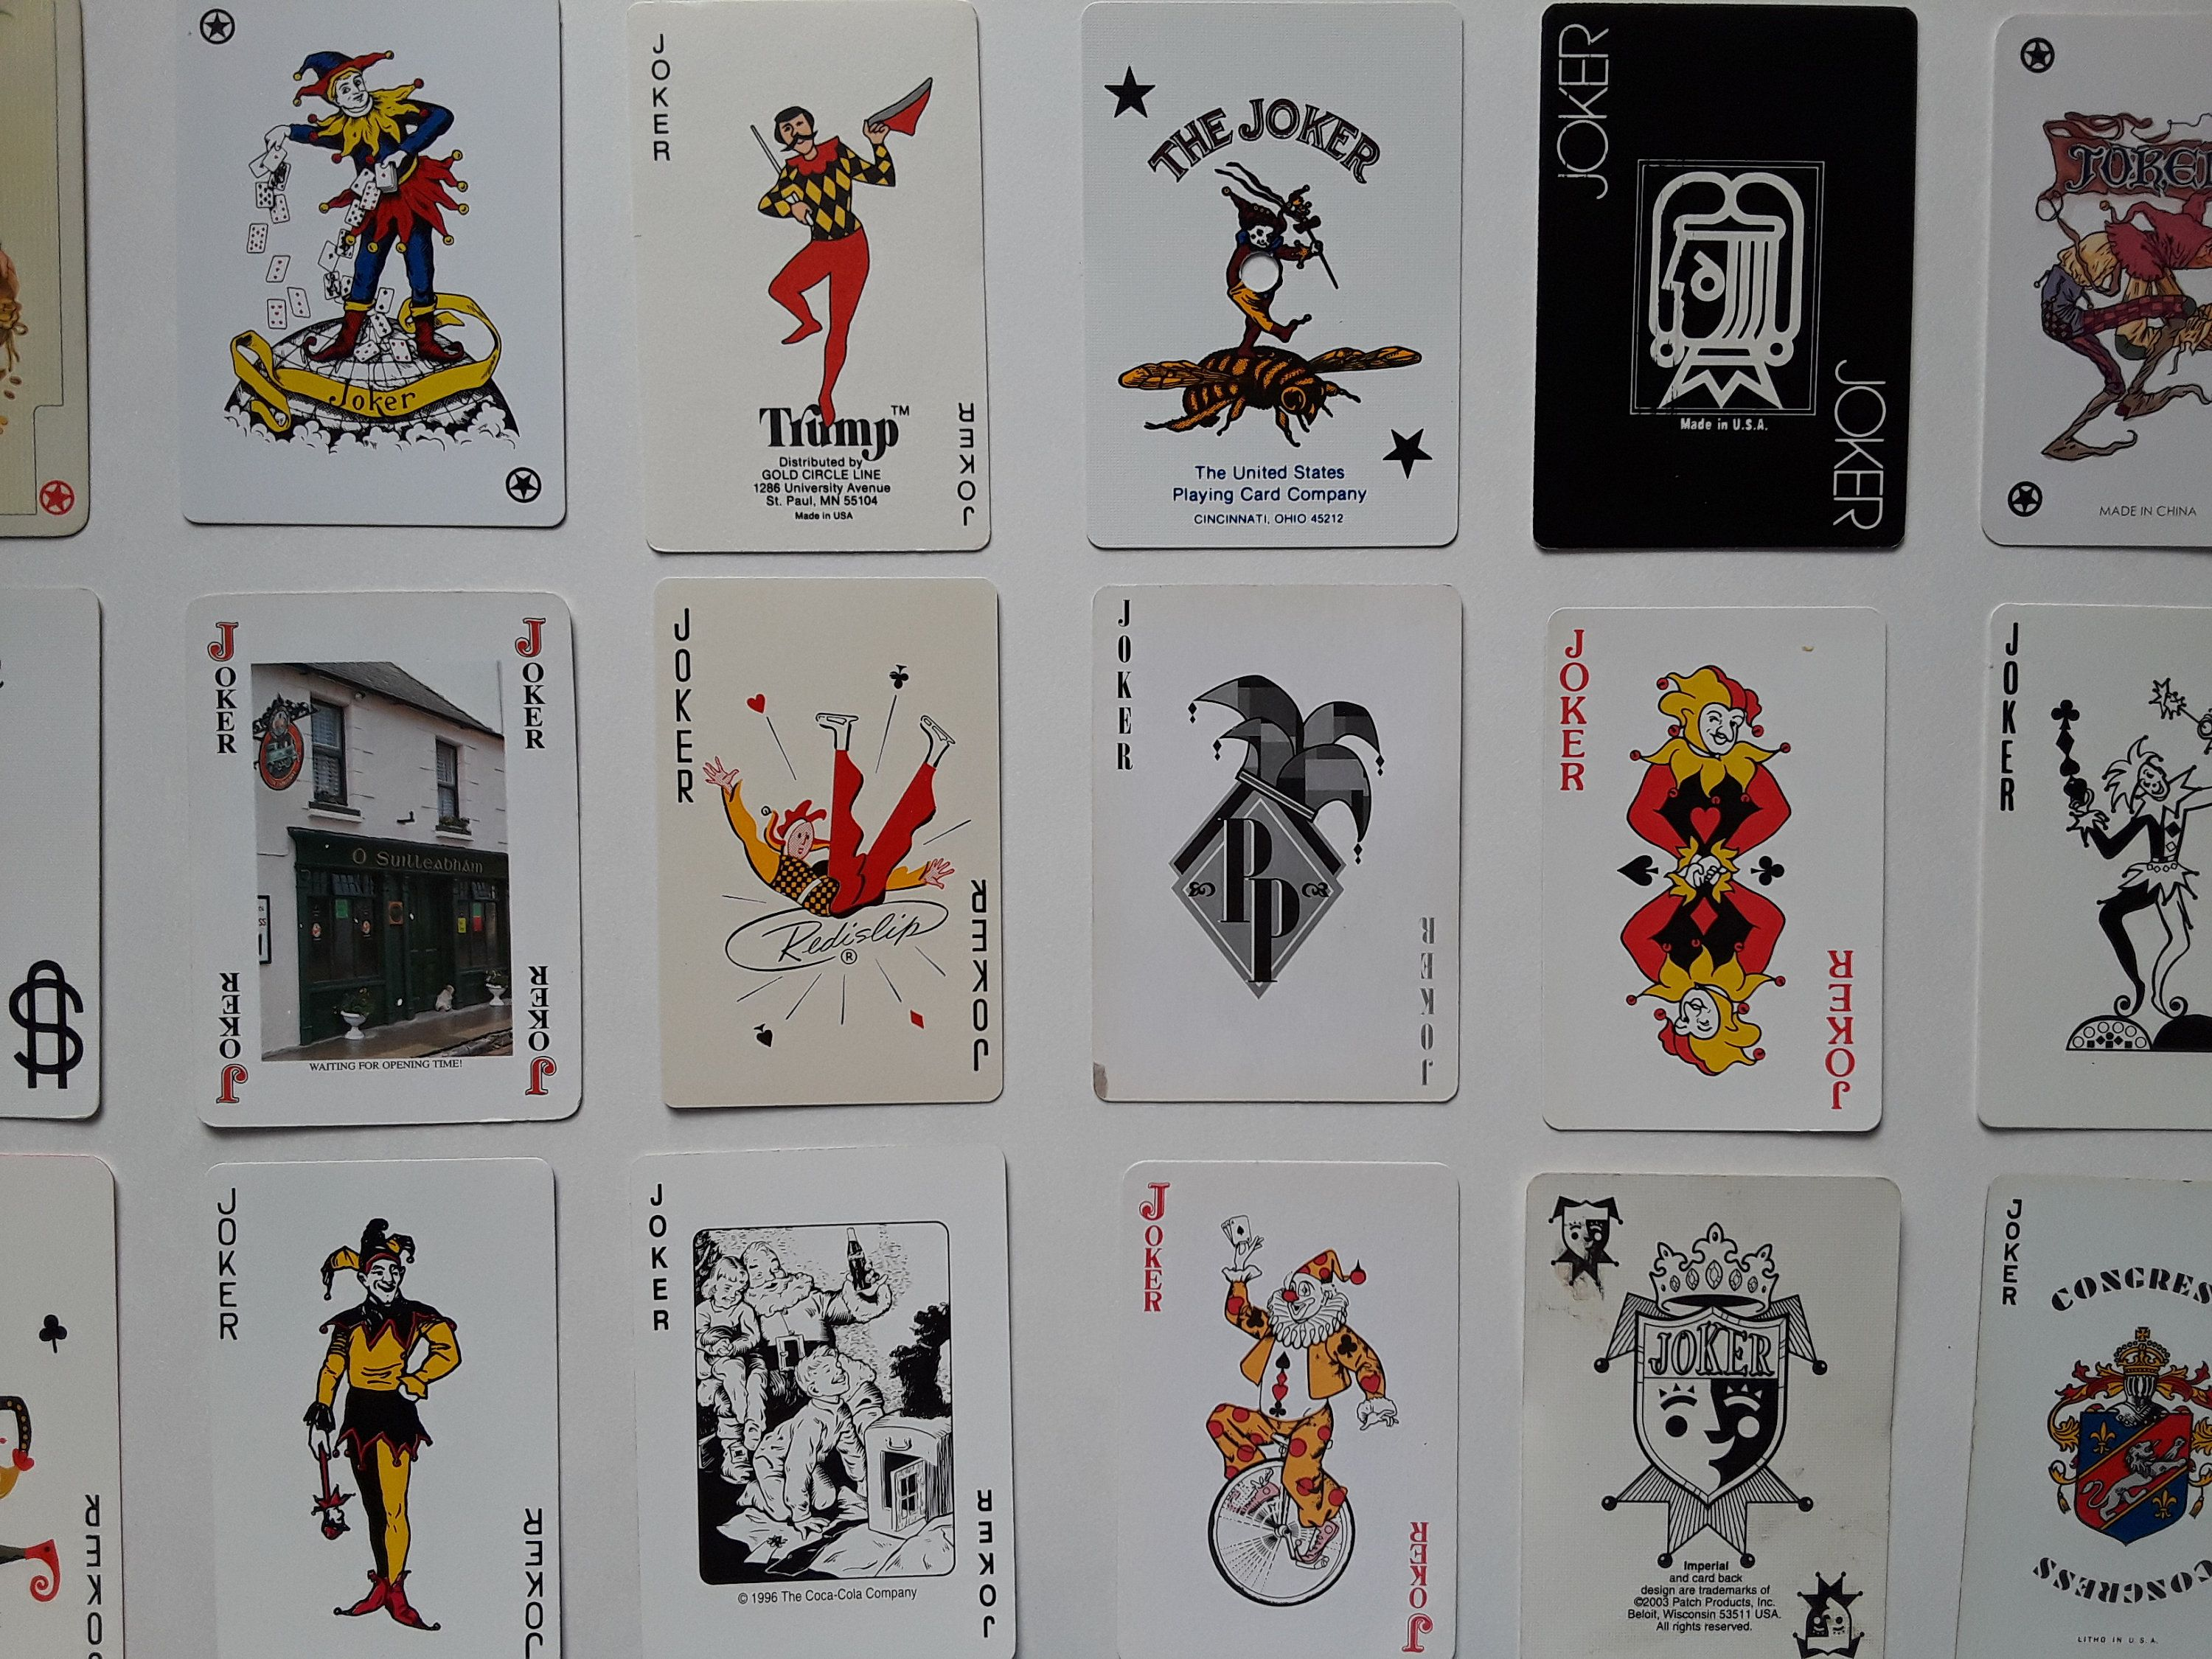 Instant Collection Of 21 Vintage Joker Playing Cards Joker Card Vintage Clowns Jokers Vintage Playing Cards Joker Vintage Joker Joker Playing Card Vintage Playing Cards Joker Card